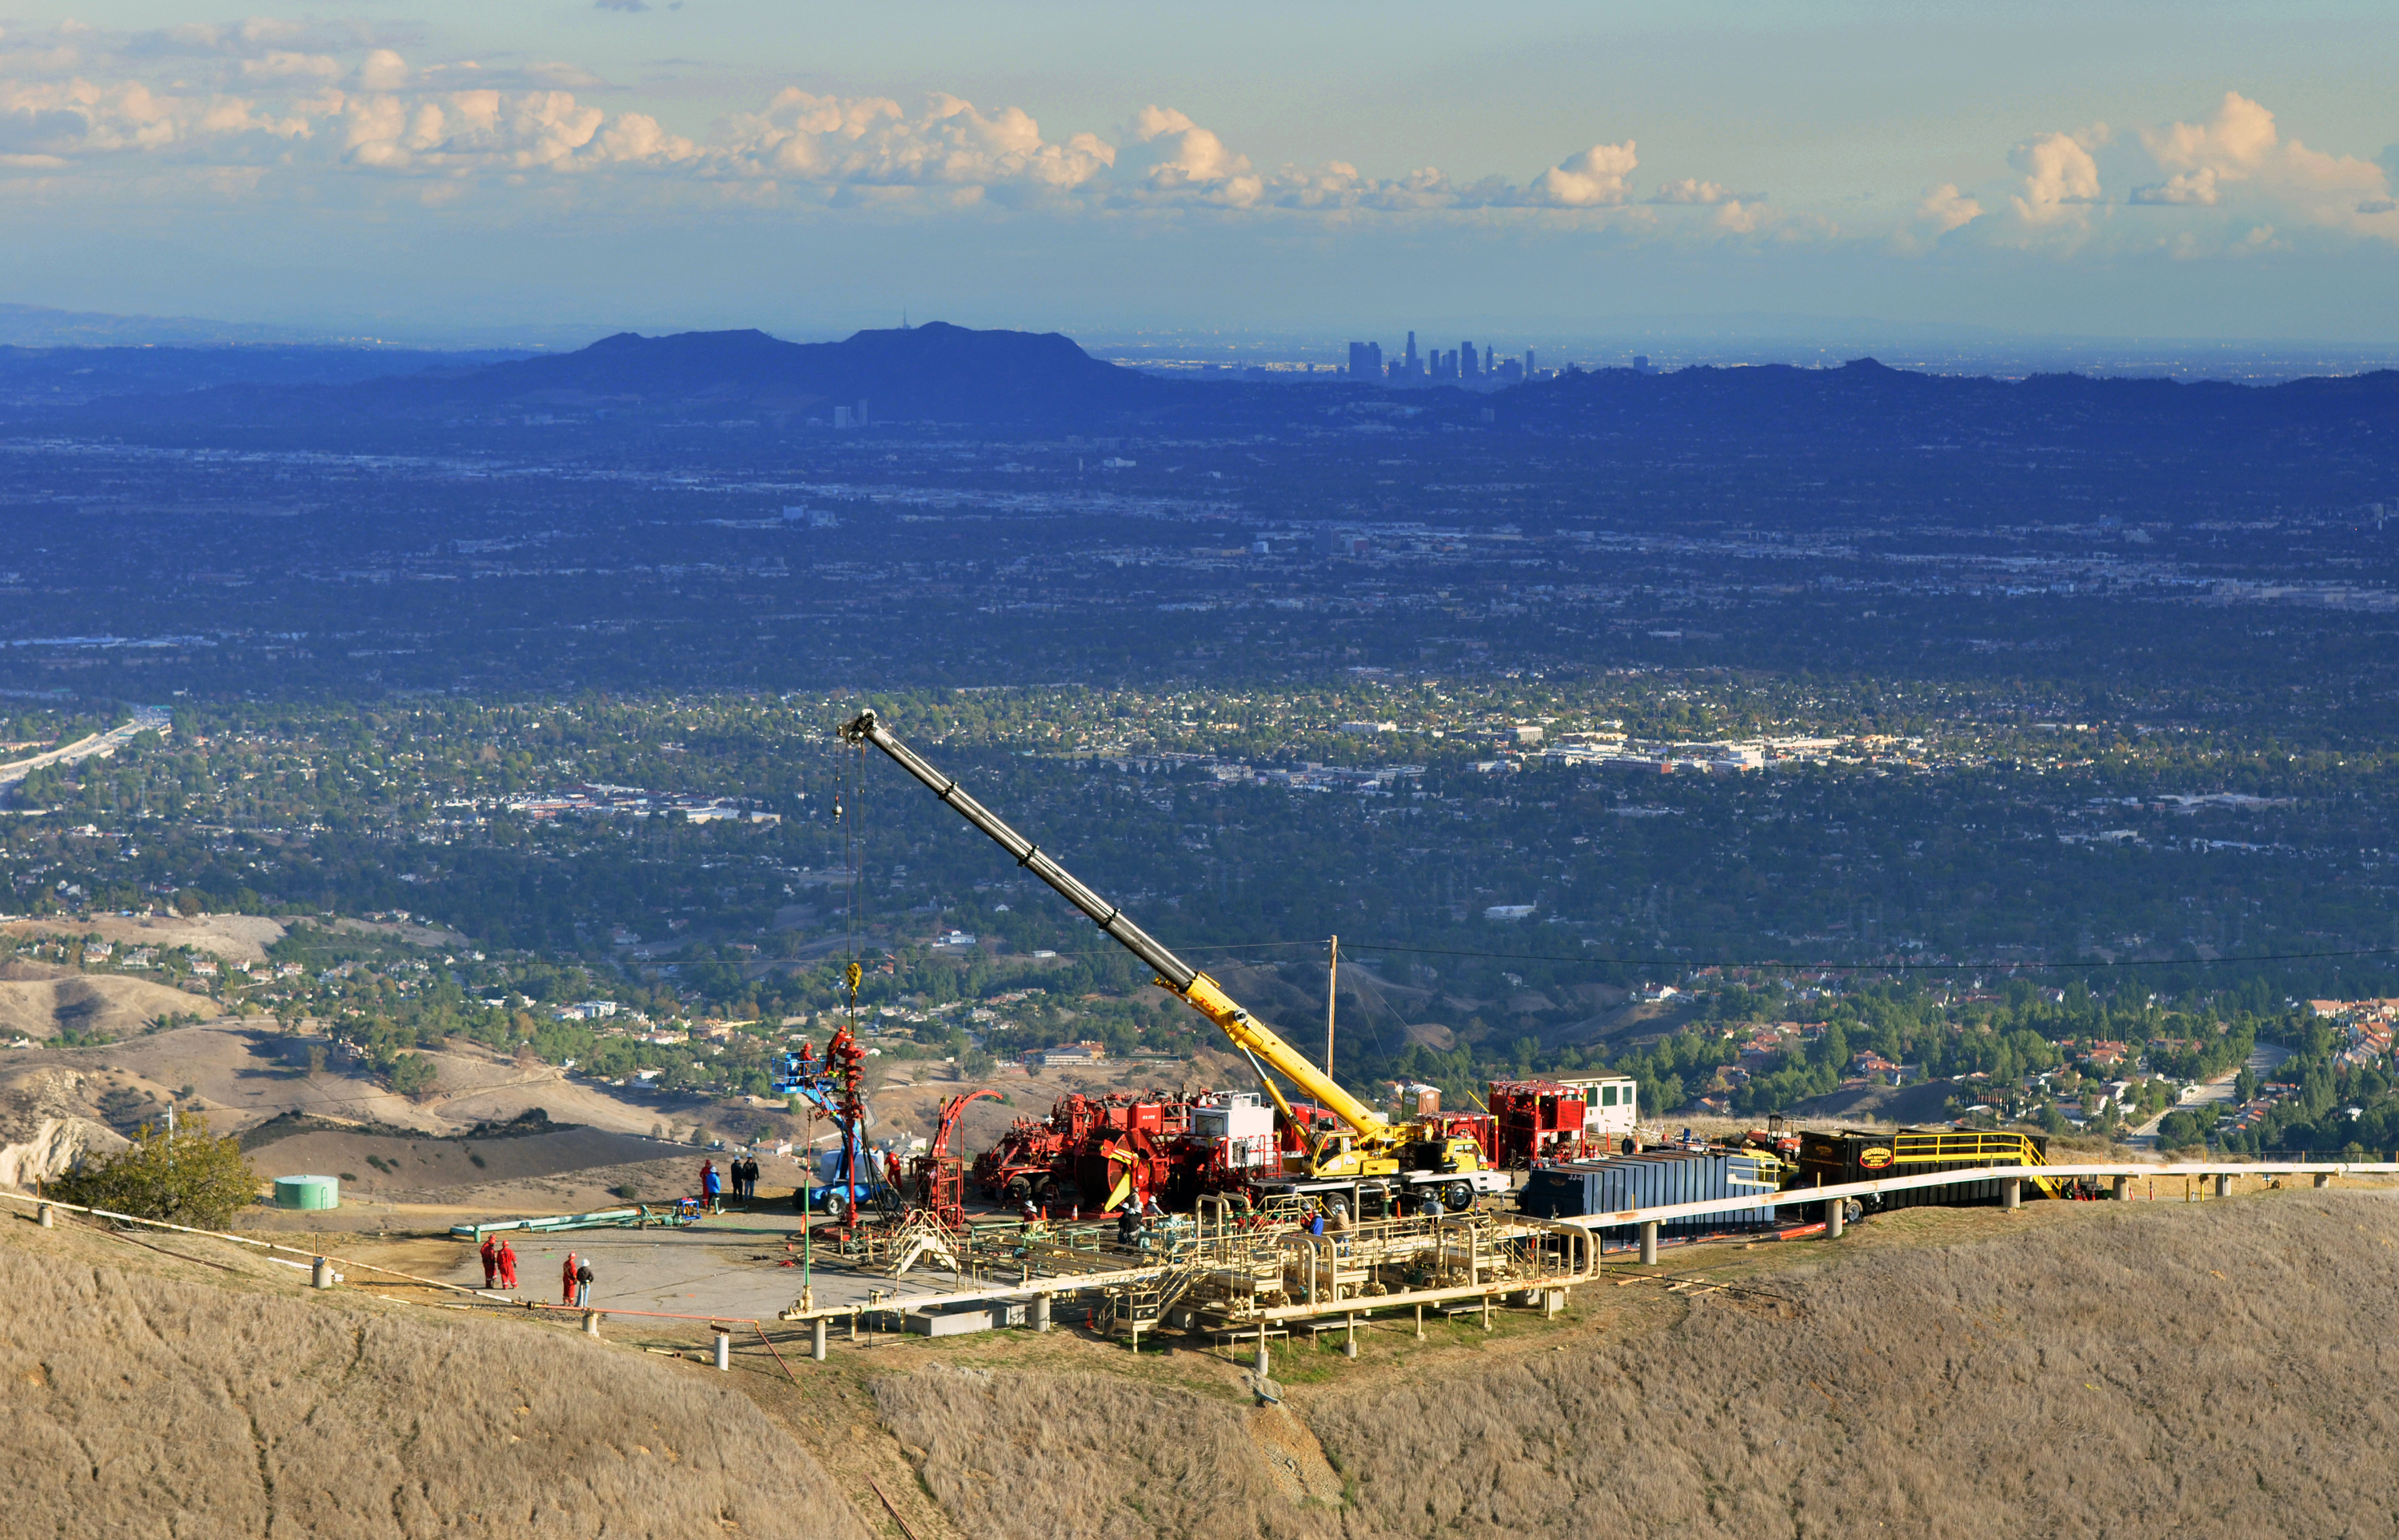 FILE - In this Nov. 3, 2015, file photo, provided by Southern California Gas Co. shows equipment being used as SoCalGas crews and technical experts try to stop the flow of natural gas leaking from a storage well at the utility's Aliso Canyon facility near the Northridge section of Los Angeles. Residents who say the uncontrolled leak from a massive natural gas storage field is making them sick plan to speak at a Los Angeles County Board of Supervisors meeting Tuesday, Nov. 24, 2015, and demand a full investigation of the leak, its causes and possible solutions. (Javier Mendoza/SoCalGas via AP, File)